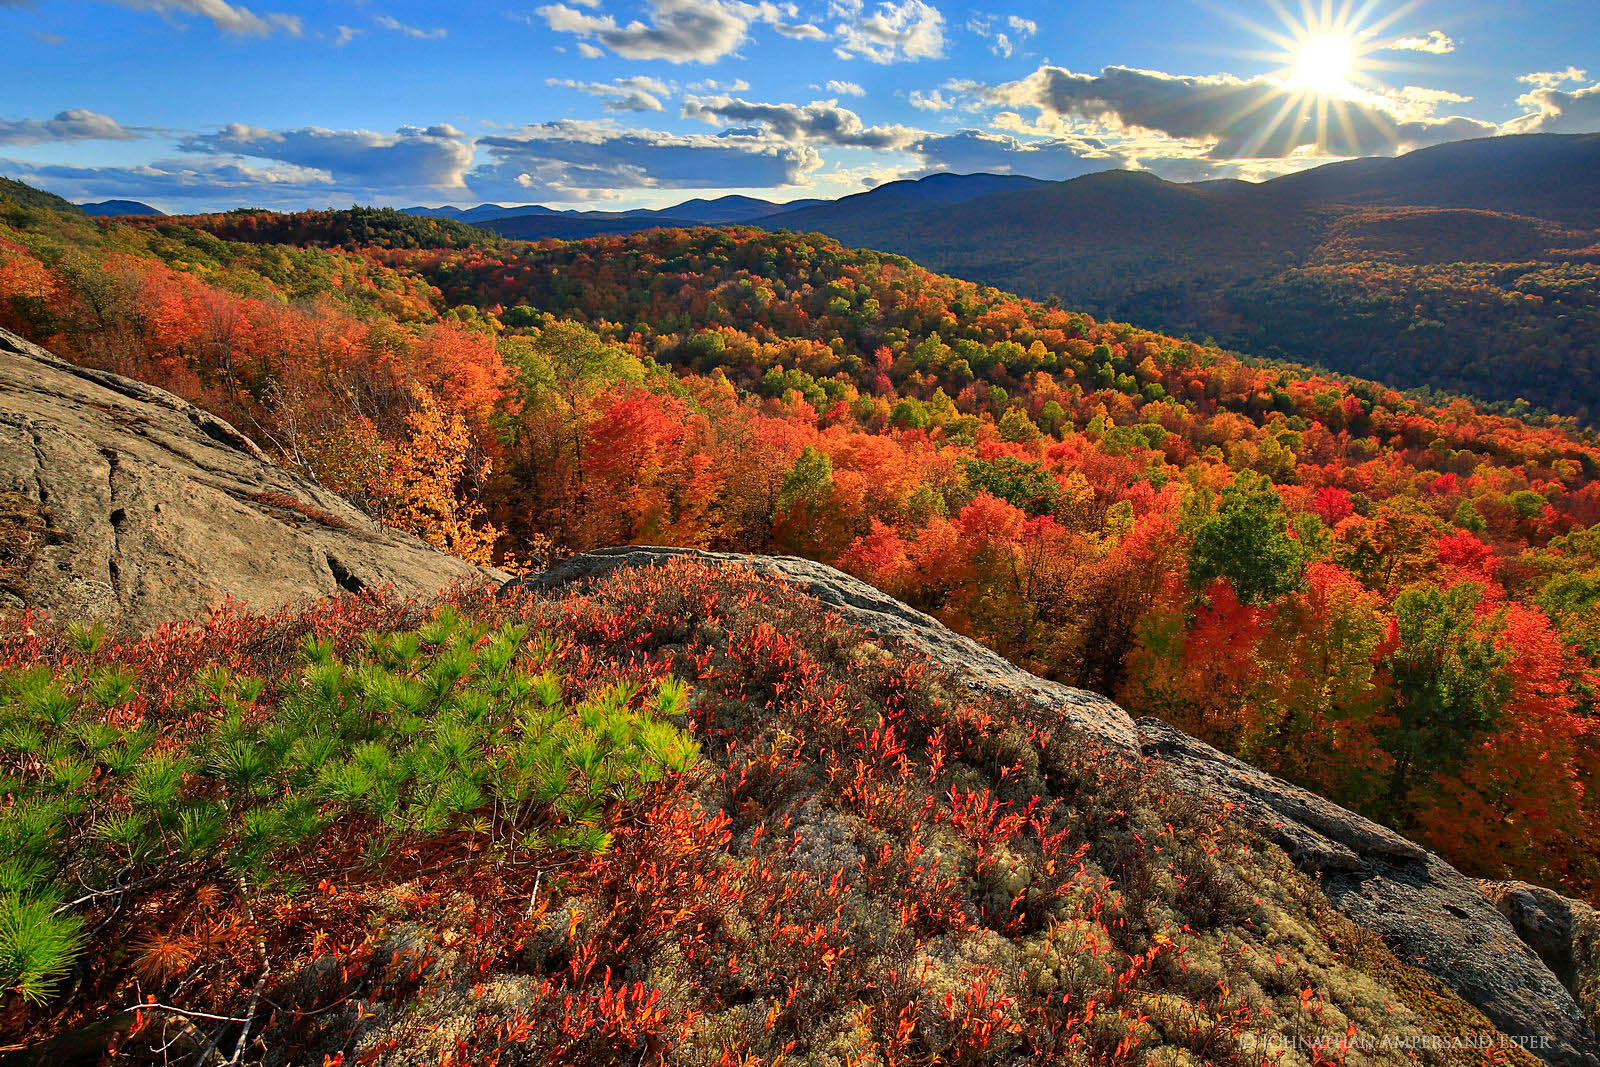 Peaceful Valley,Peaceful Valley Cliffs,Gore Mt,Gore Mountain,autumn,backlit,foliage,red,Adirondack Mountains, photo